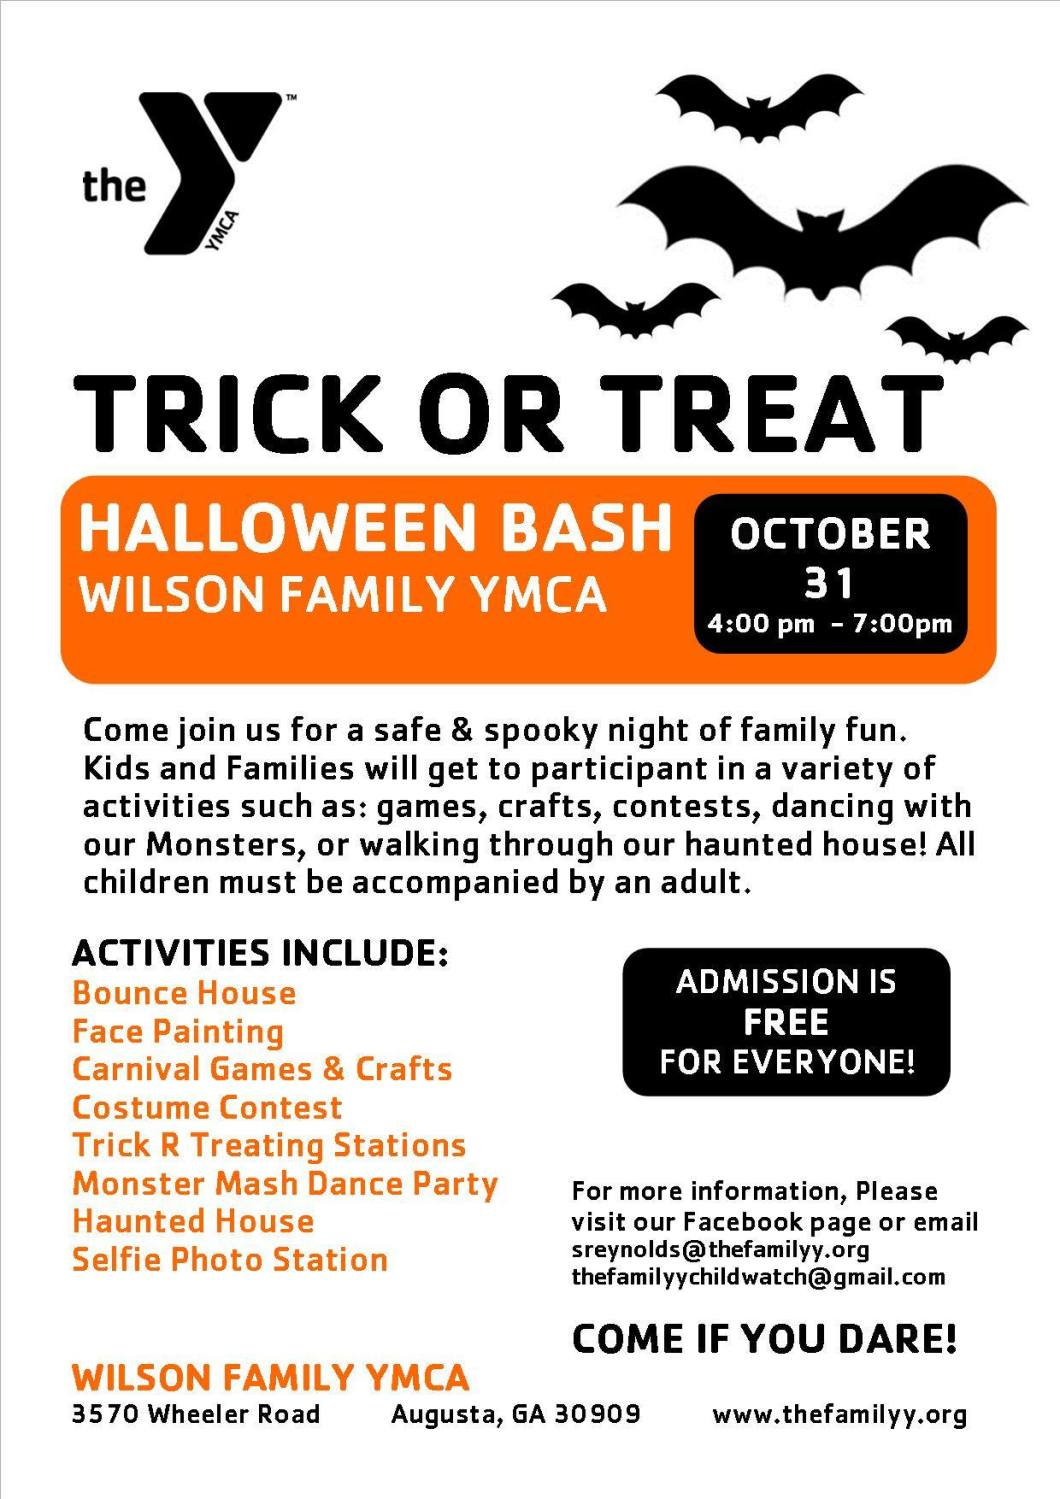 Halloween At The Y Bring Whole Family To Explore Spooky Hallways Dance With Our Monsters Create Fall Crafts Trick Or Treat And Plenty More